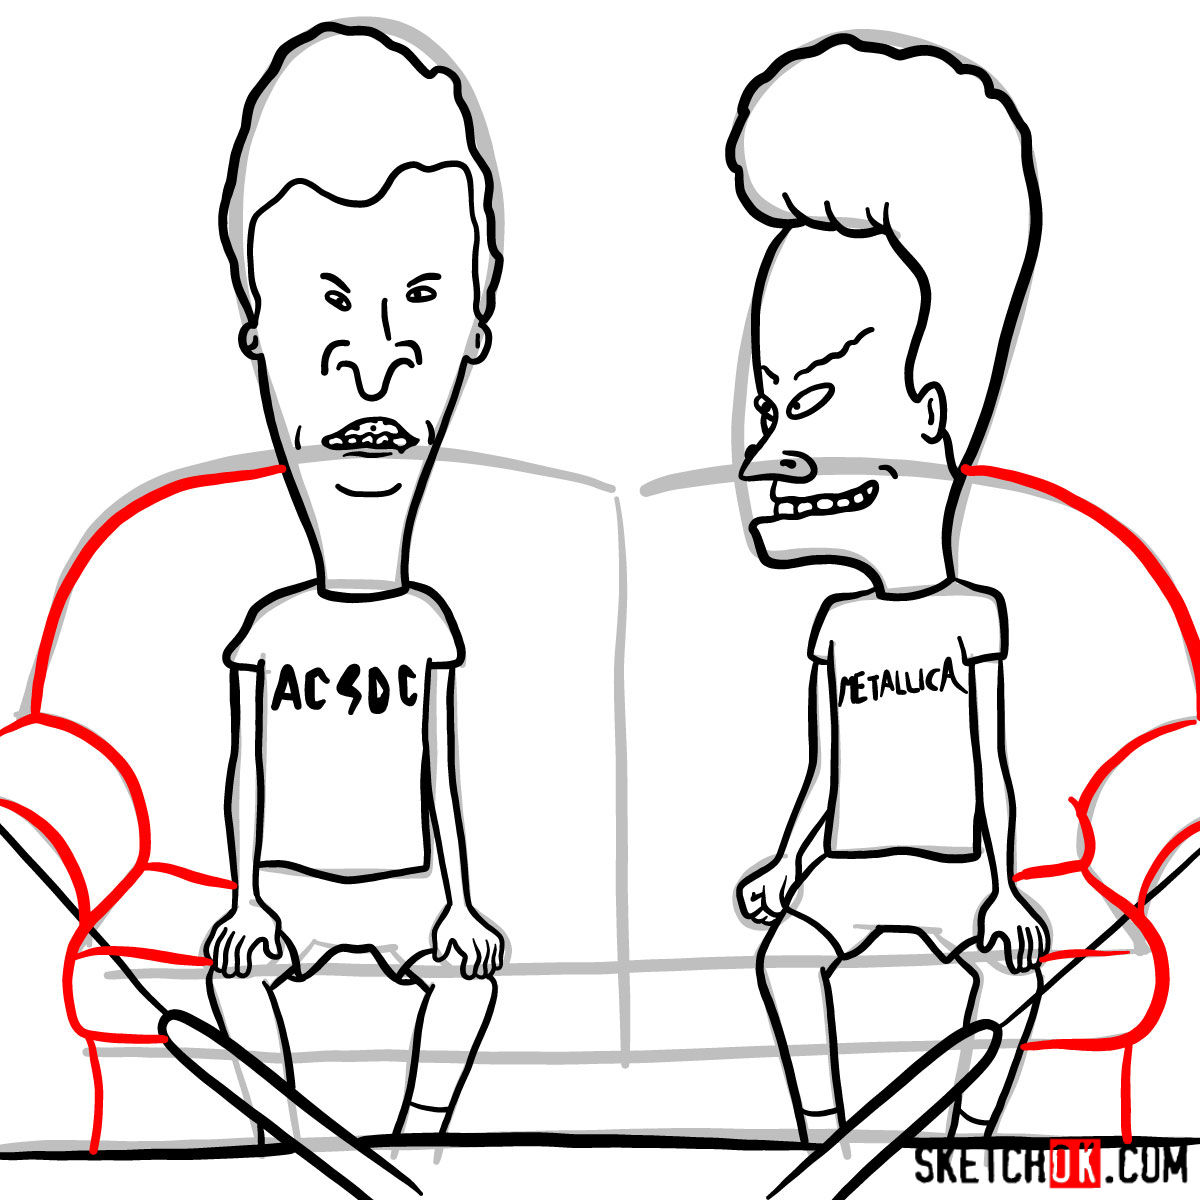 How to draw Beavis and Butt-Head - step 19